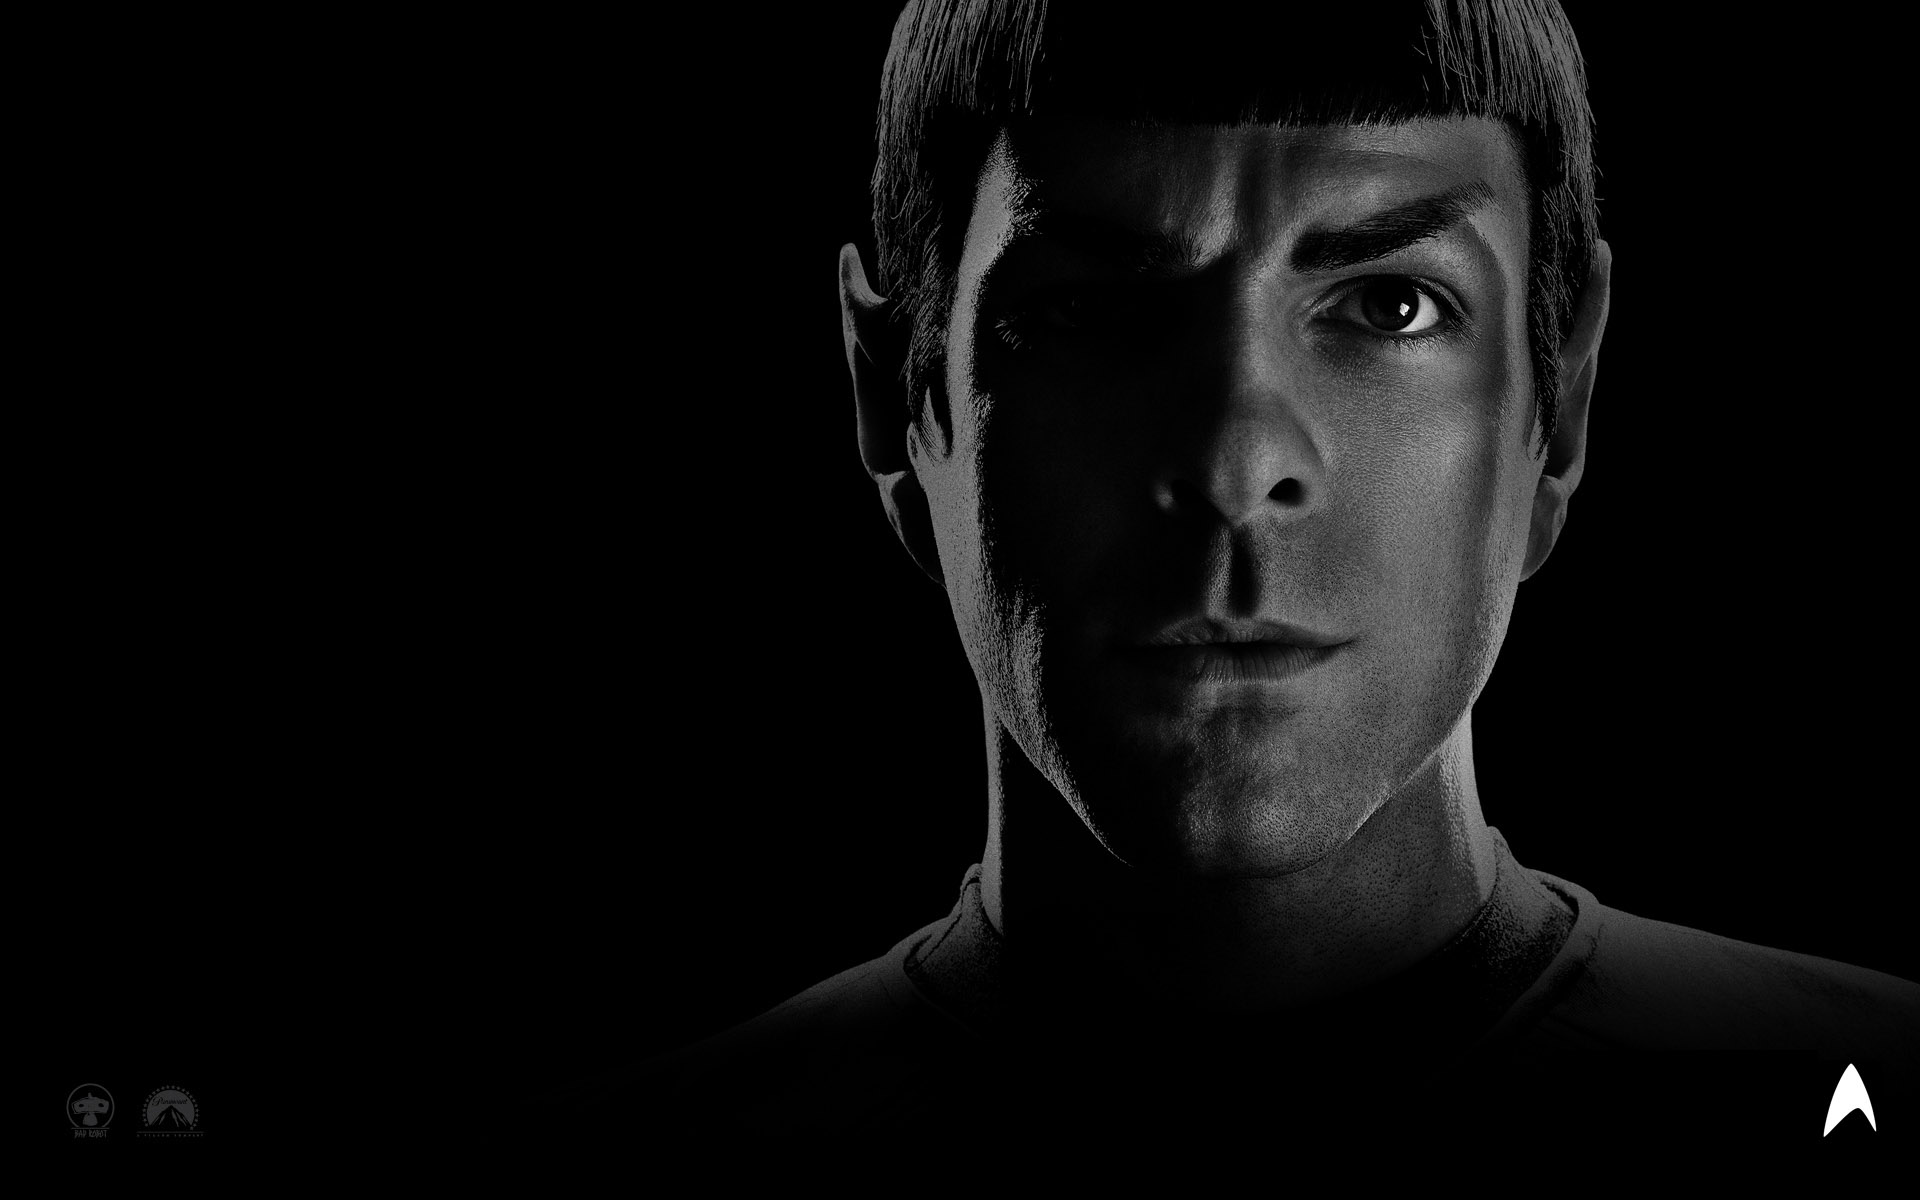 Wallpaper Star Trek Portrait Spock